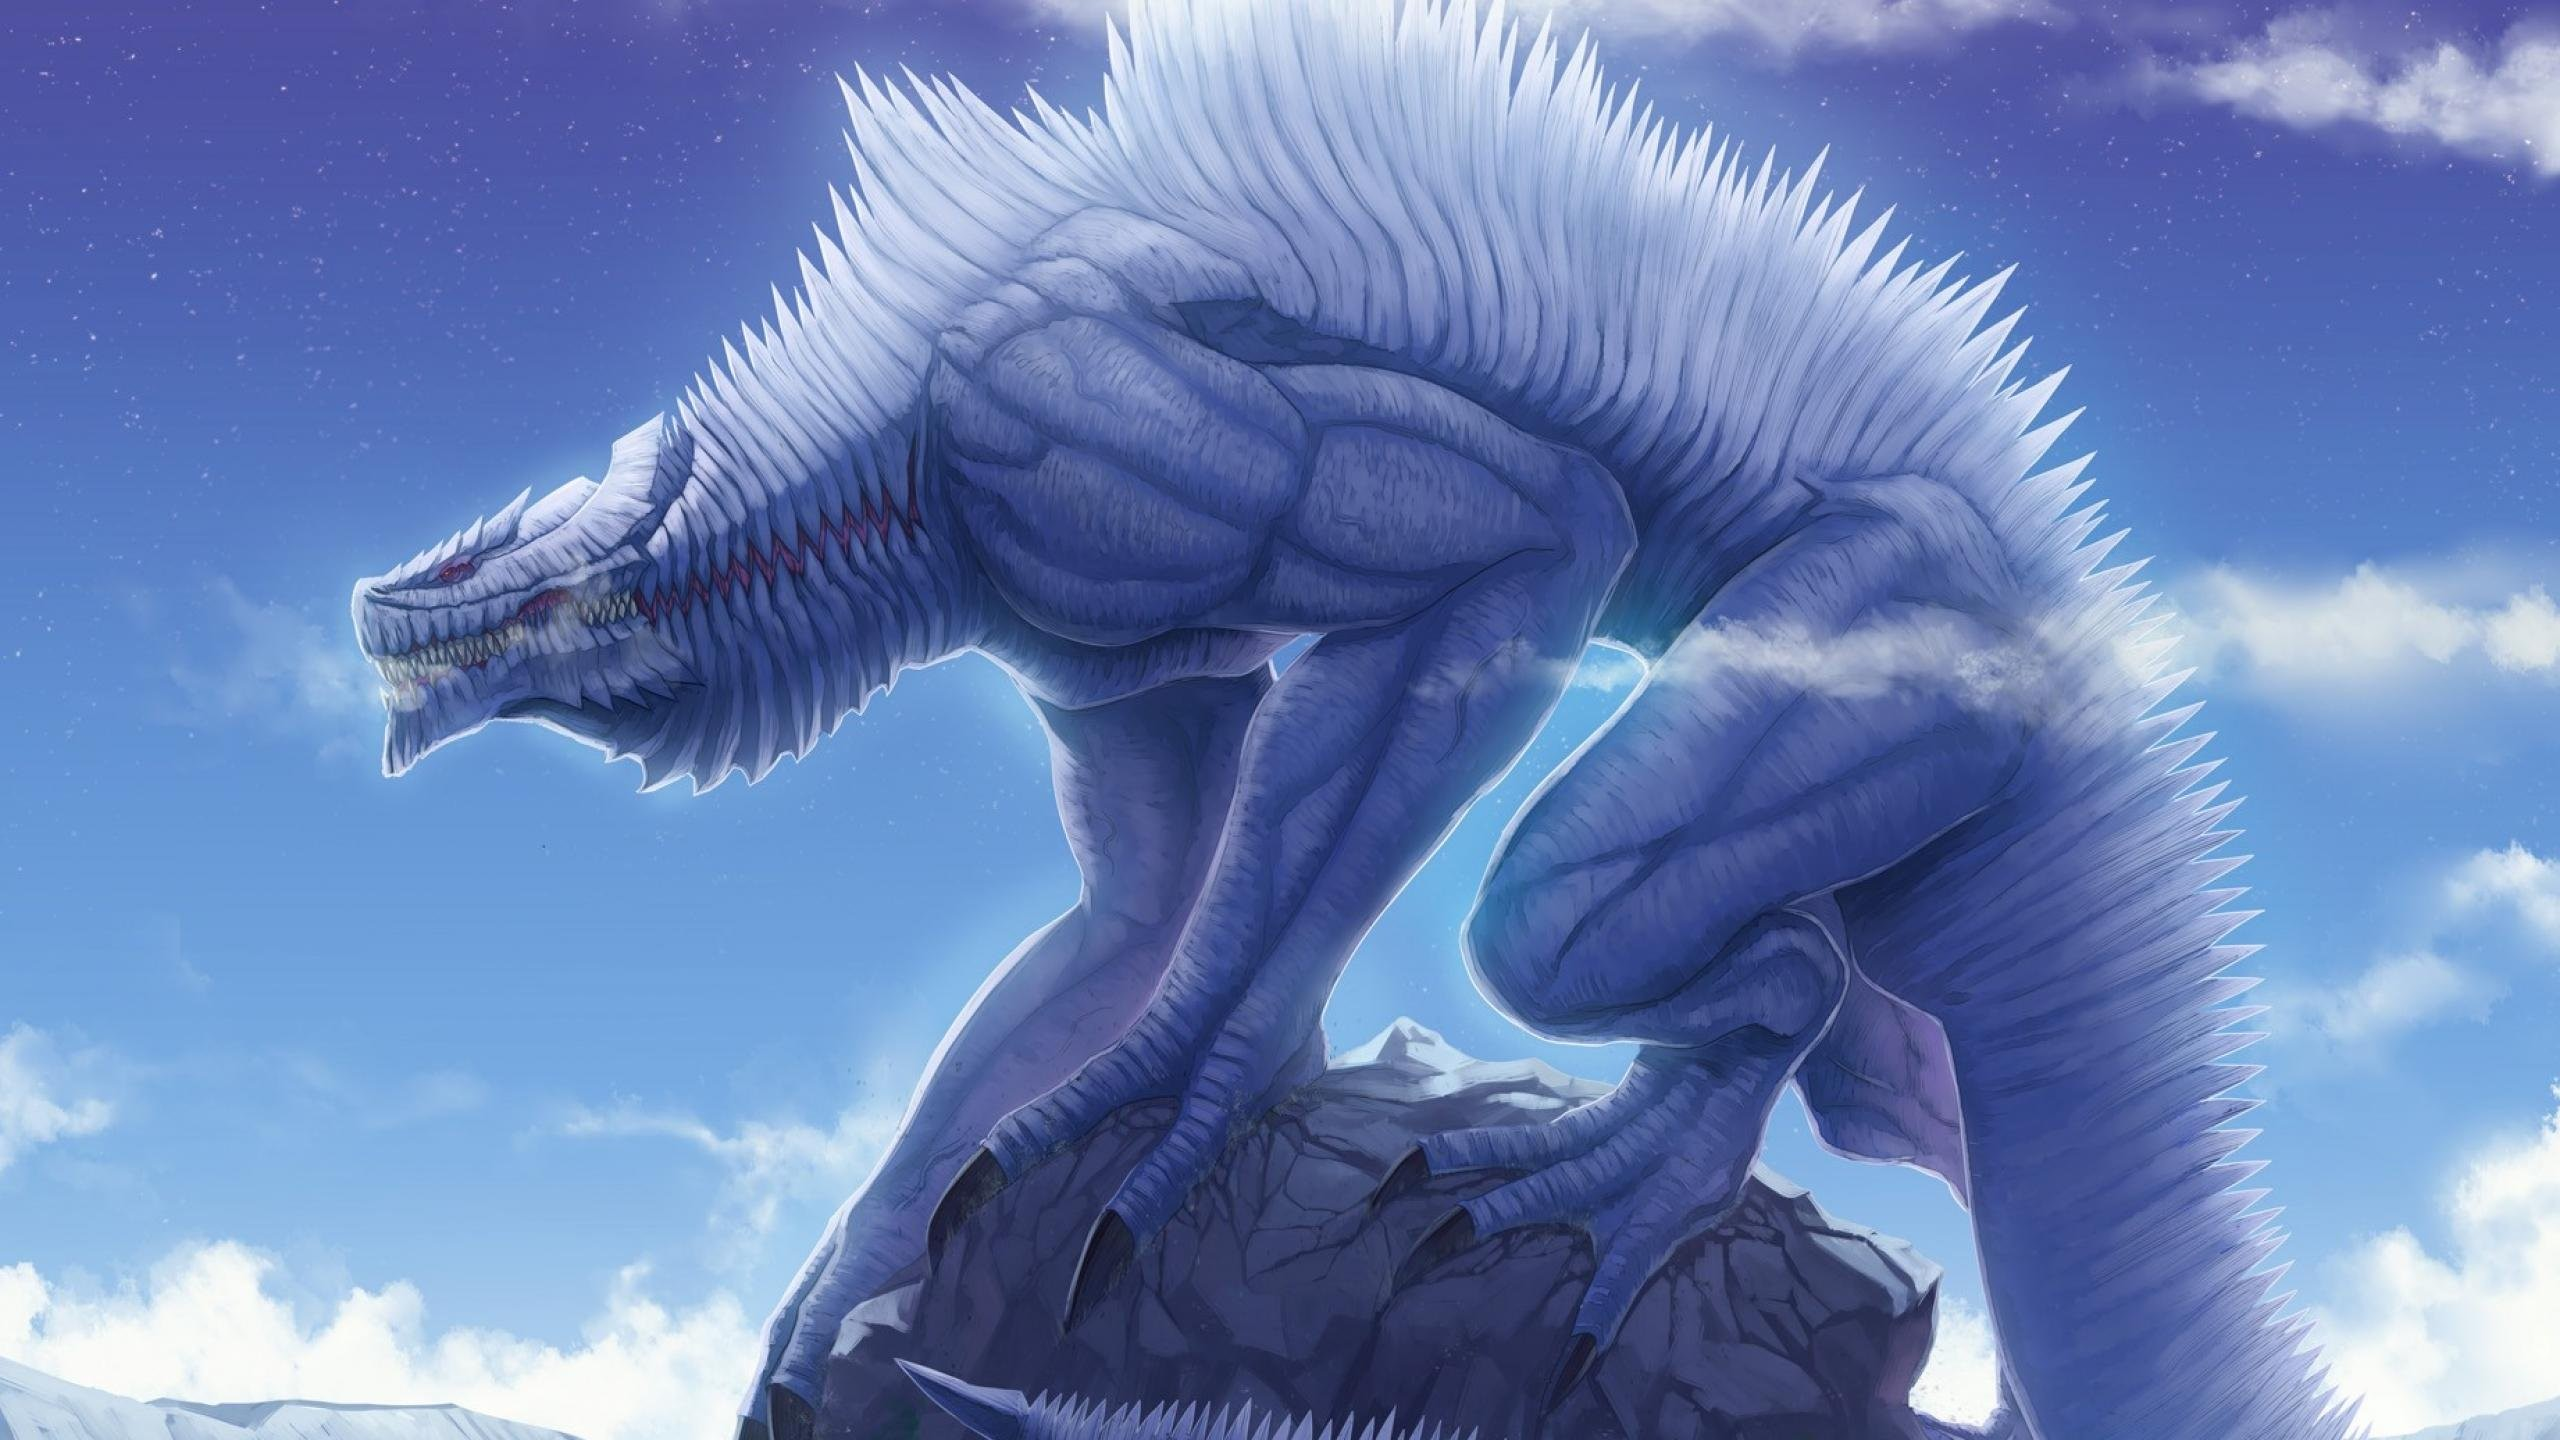 Ice Wolf 3d Wallpaper Download Mythical Creatures Wallpaper 67 Images